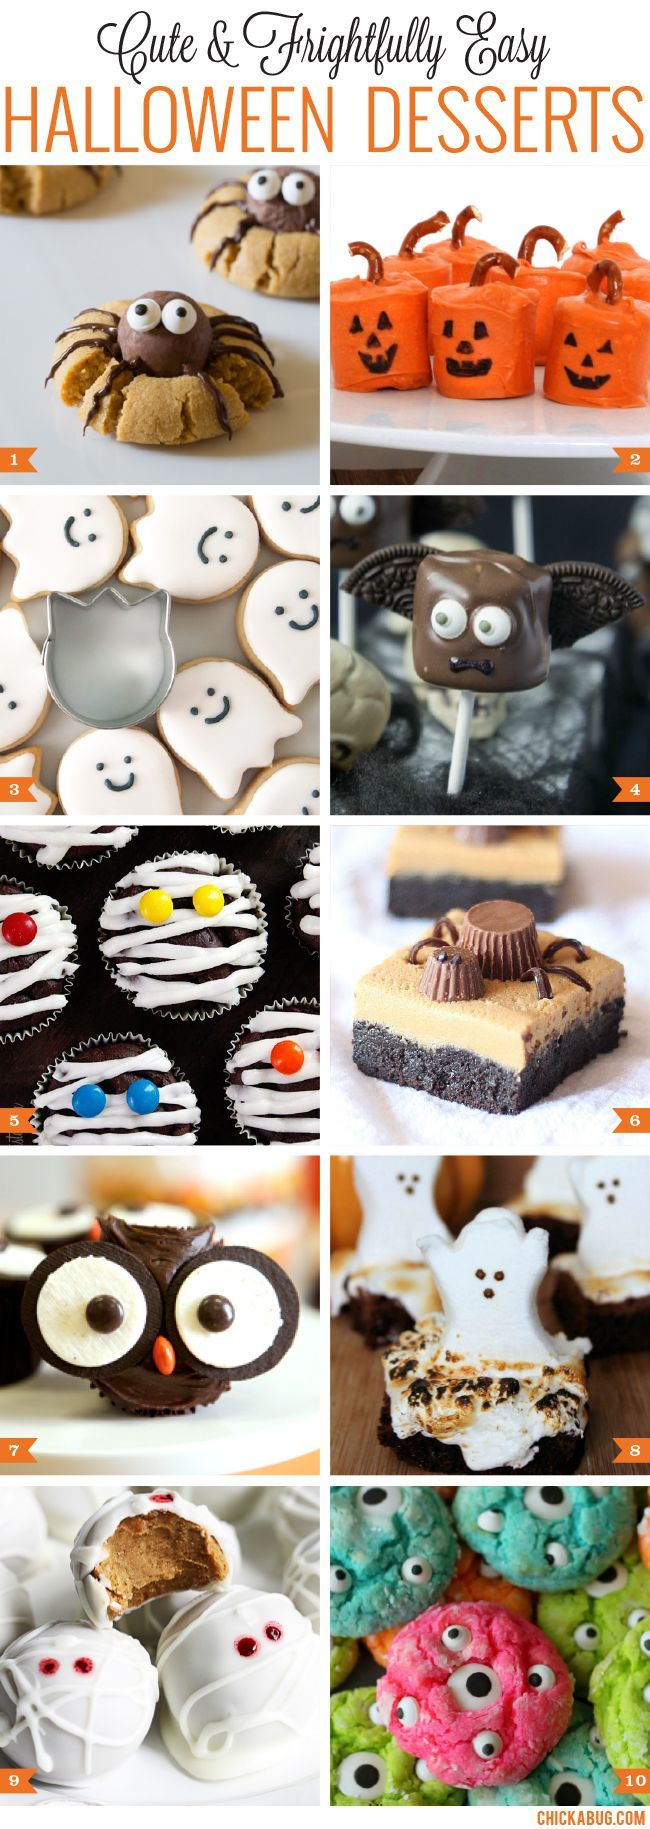 Cute and easy #Halloween desserts! Love these!!